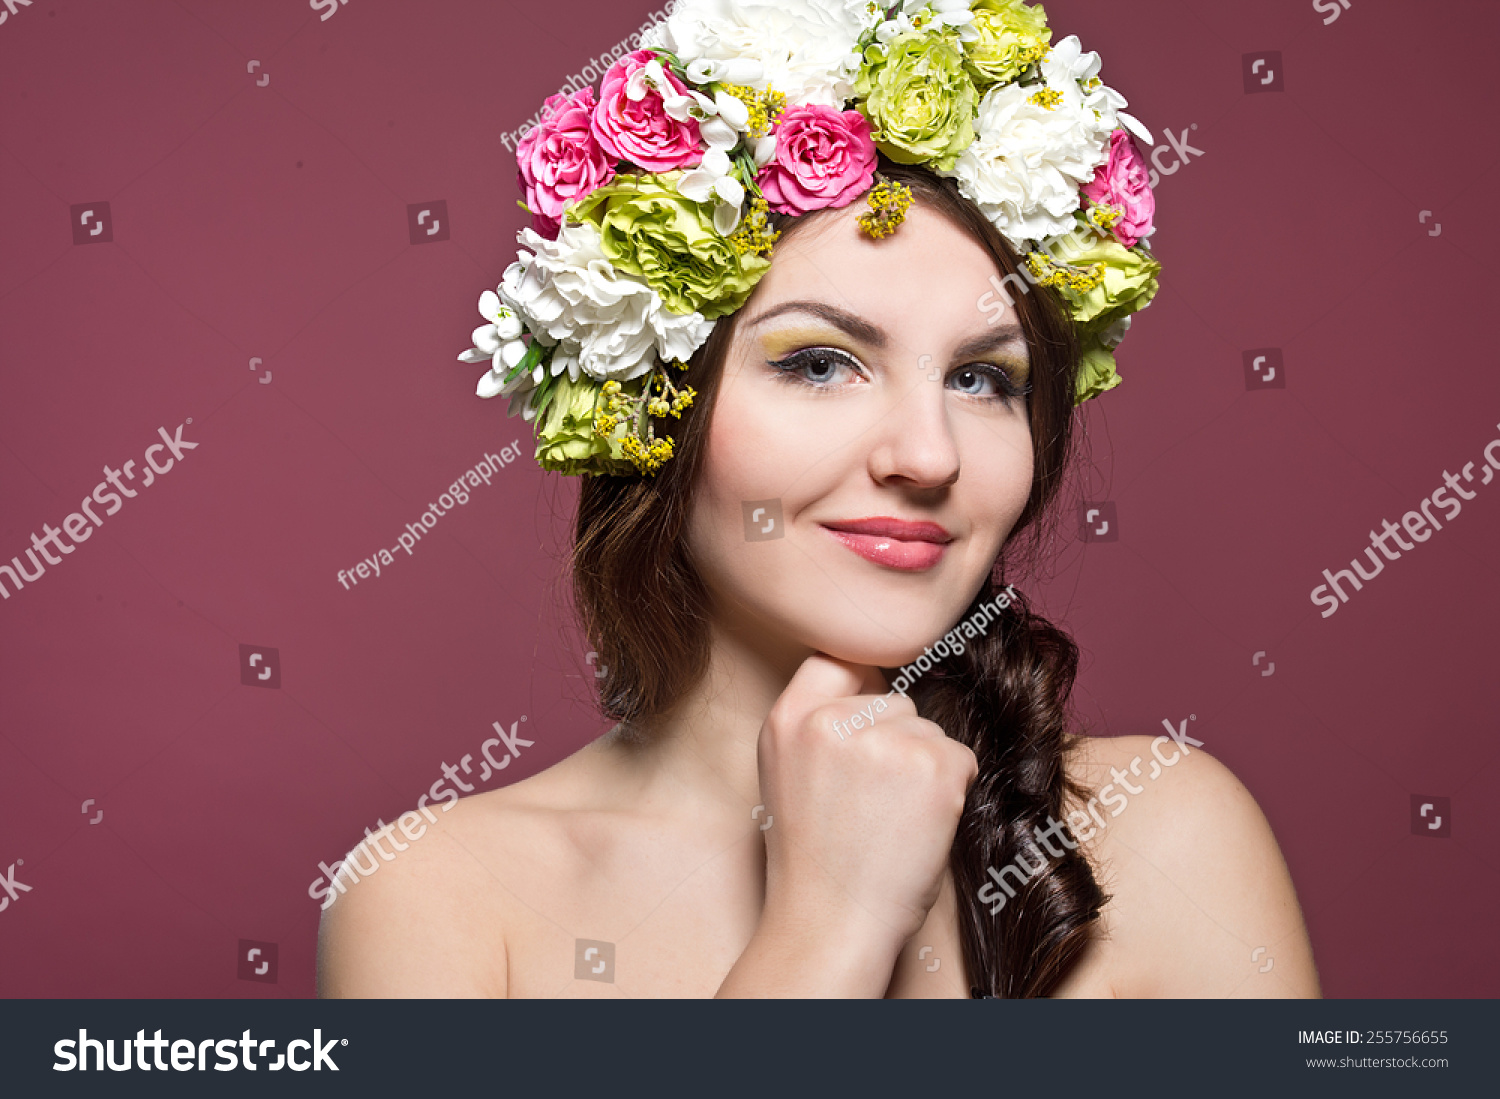 Portrait of a beautiful woman with flowers in her hair fashion id 255756655 izmirmasajfo